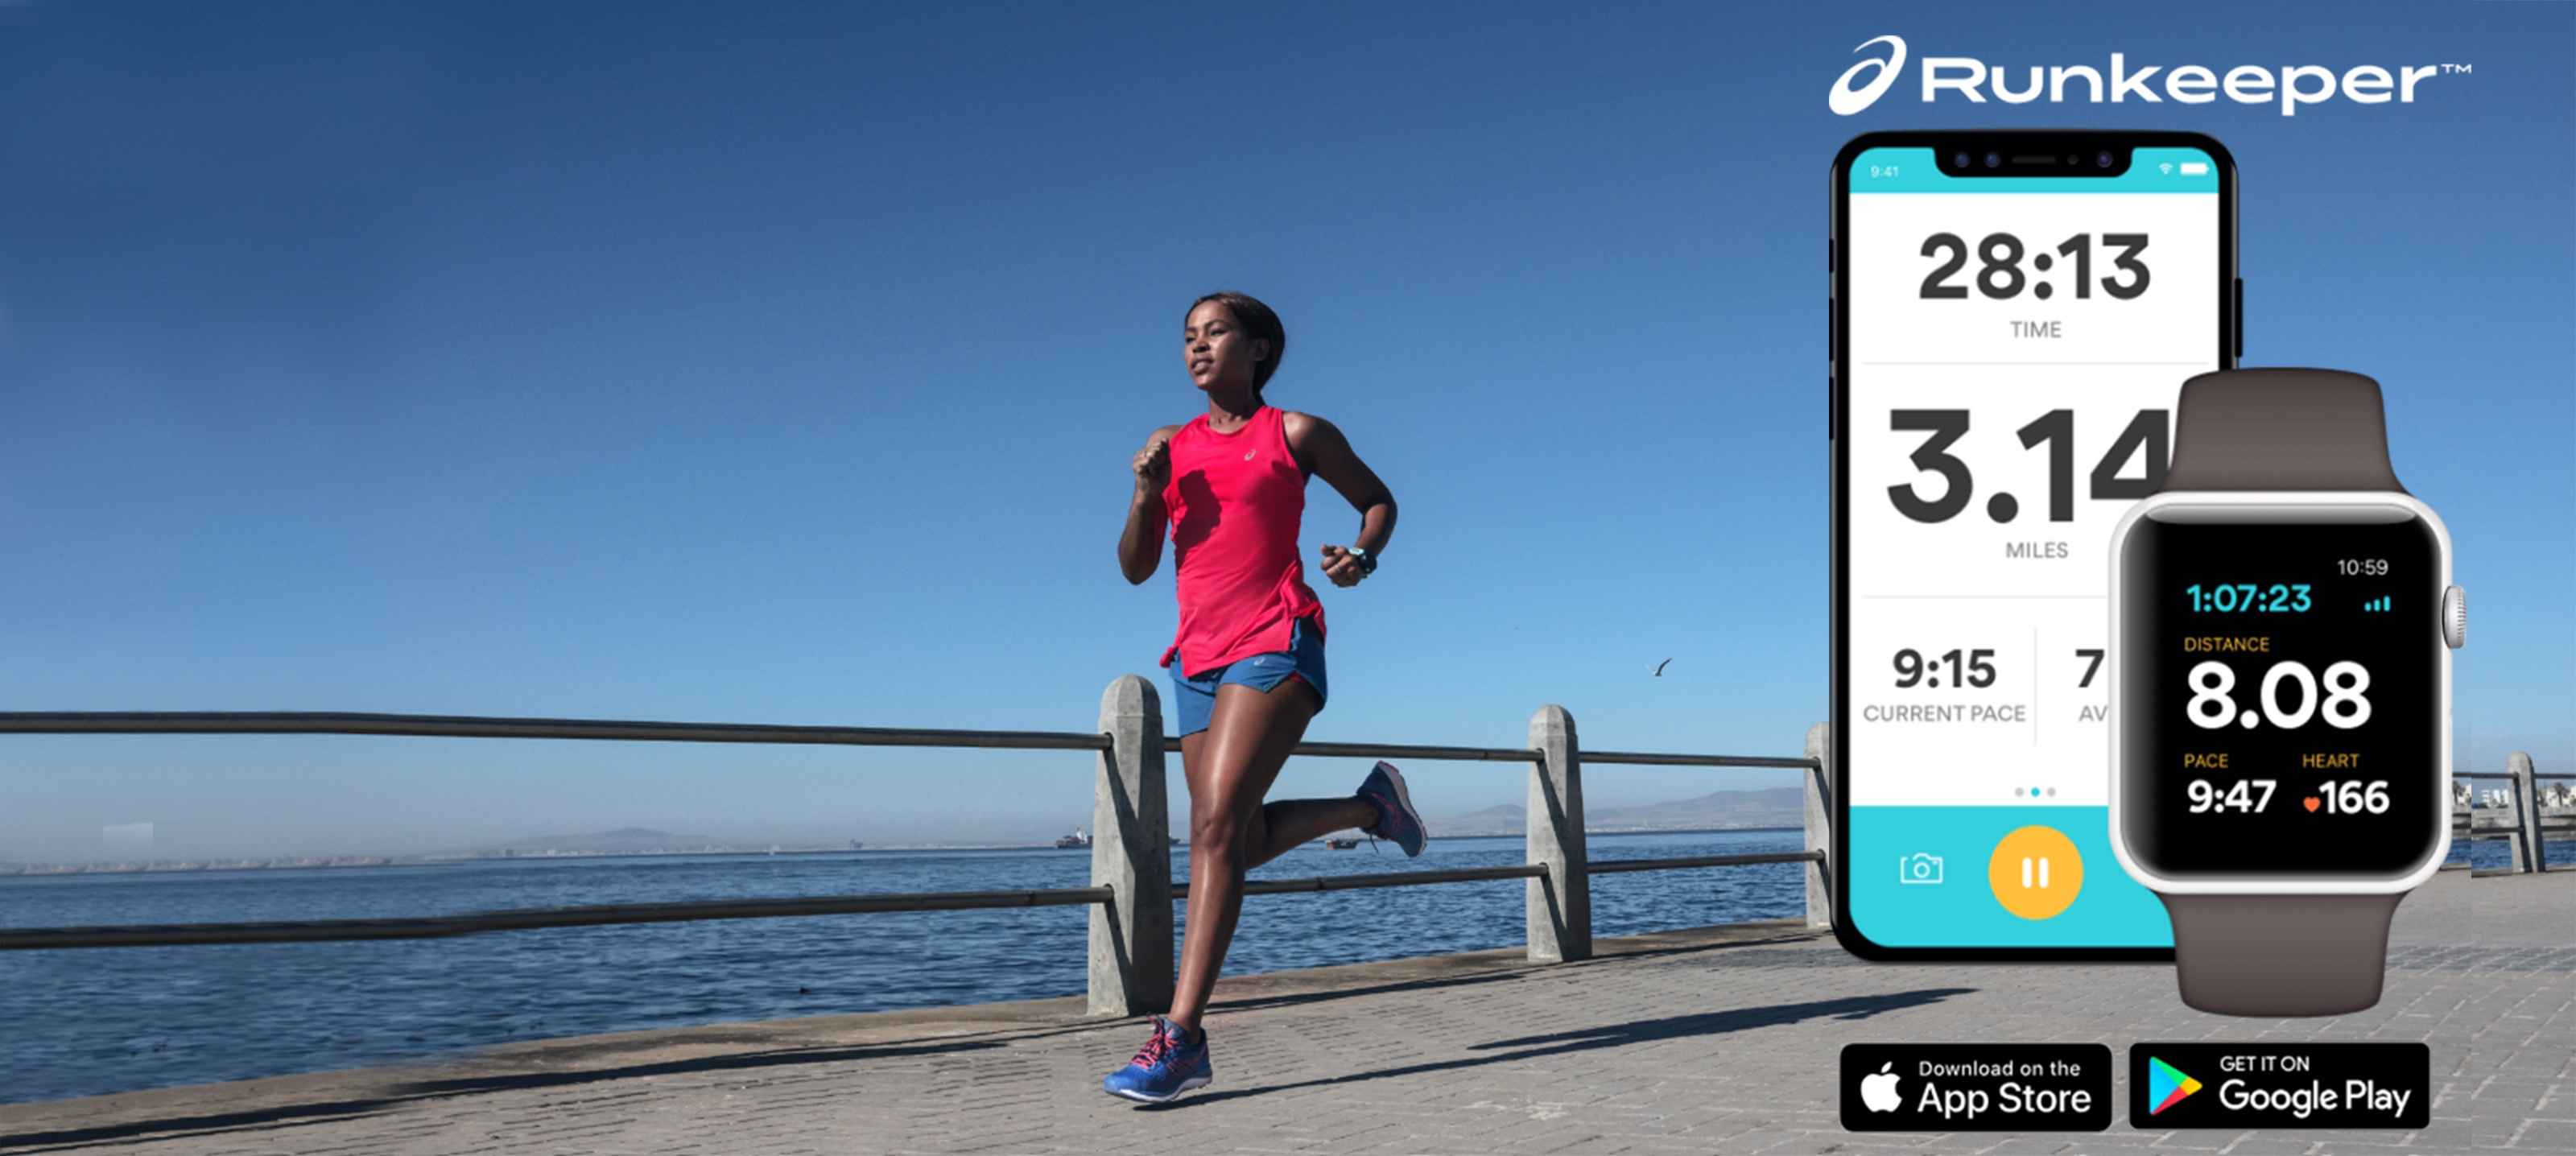 A woman in athletic clothes runs alongside a waterfront, alongside images of a smartphone screen and smartwatch.